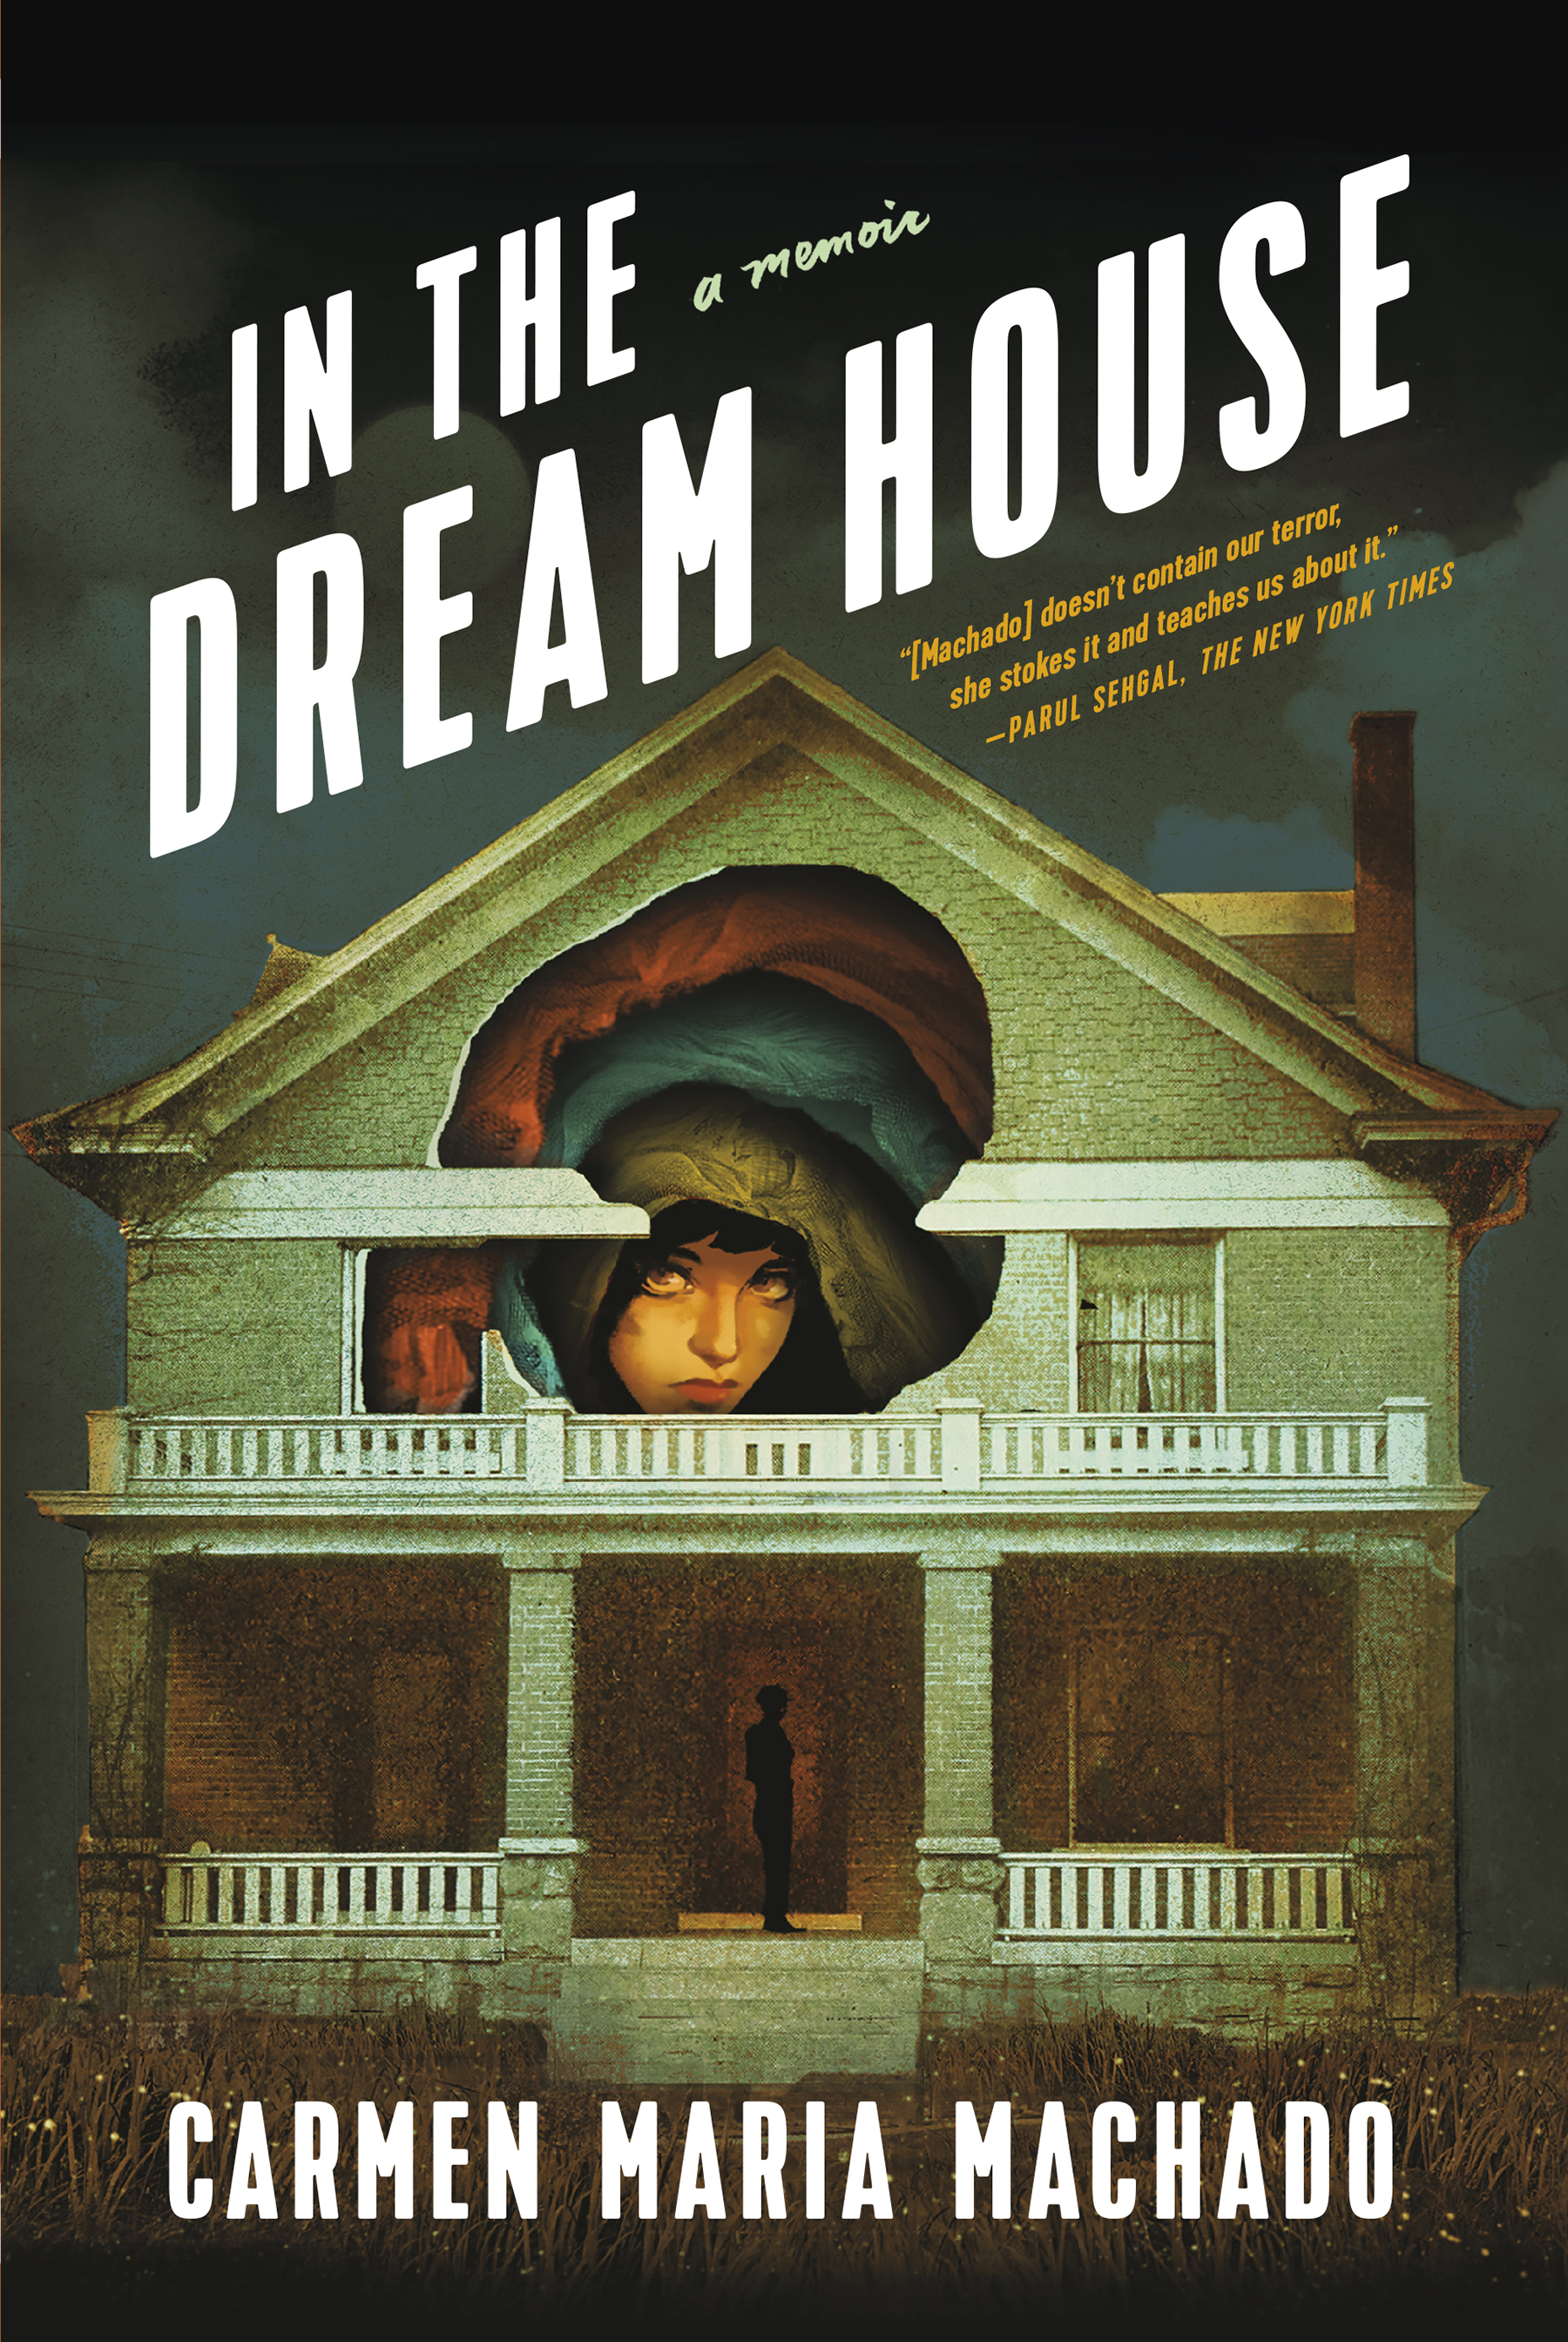 In the Dream House by Carmen Maria Machado